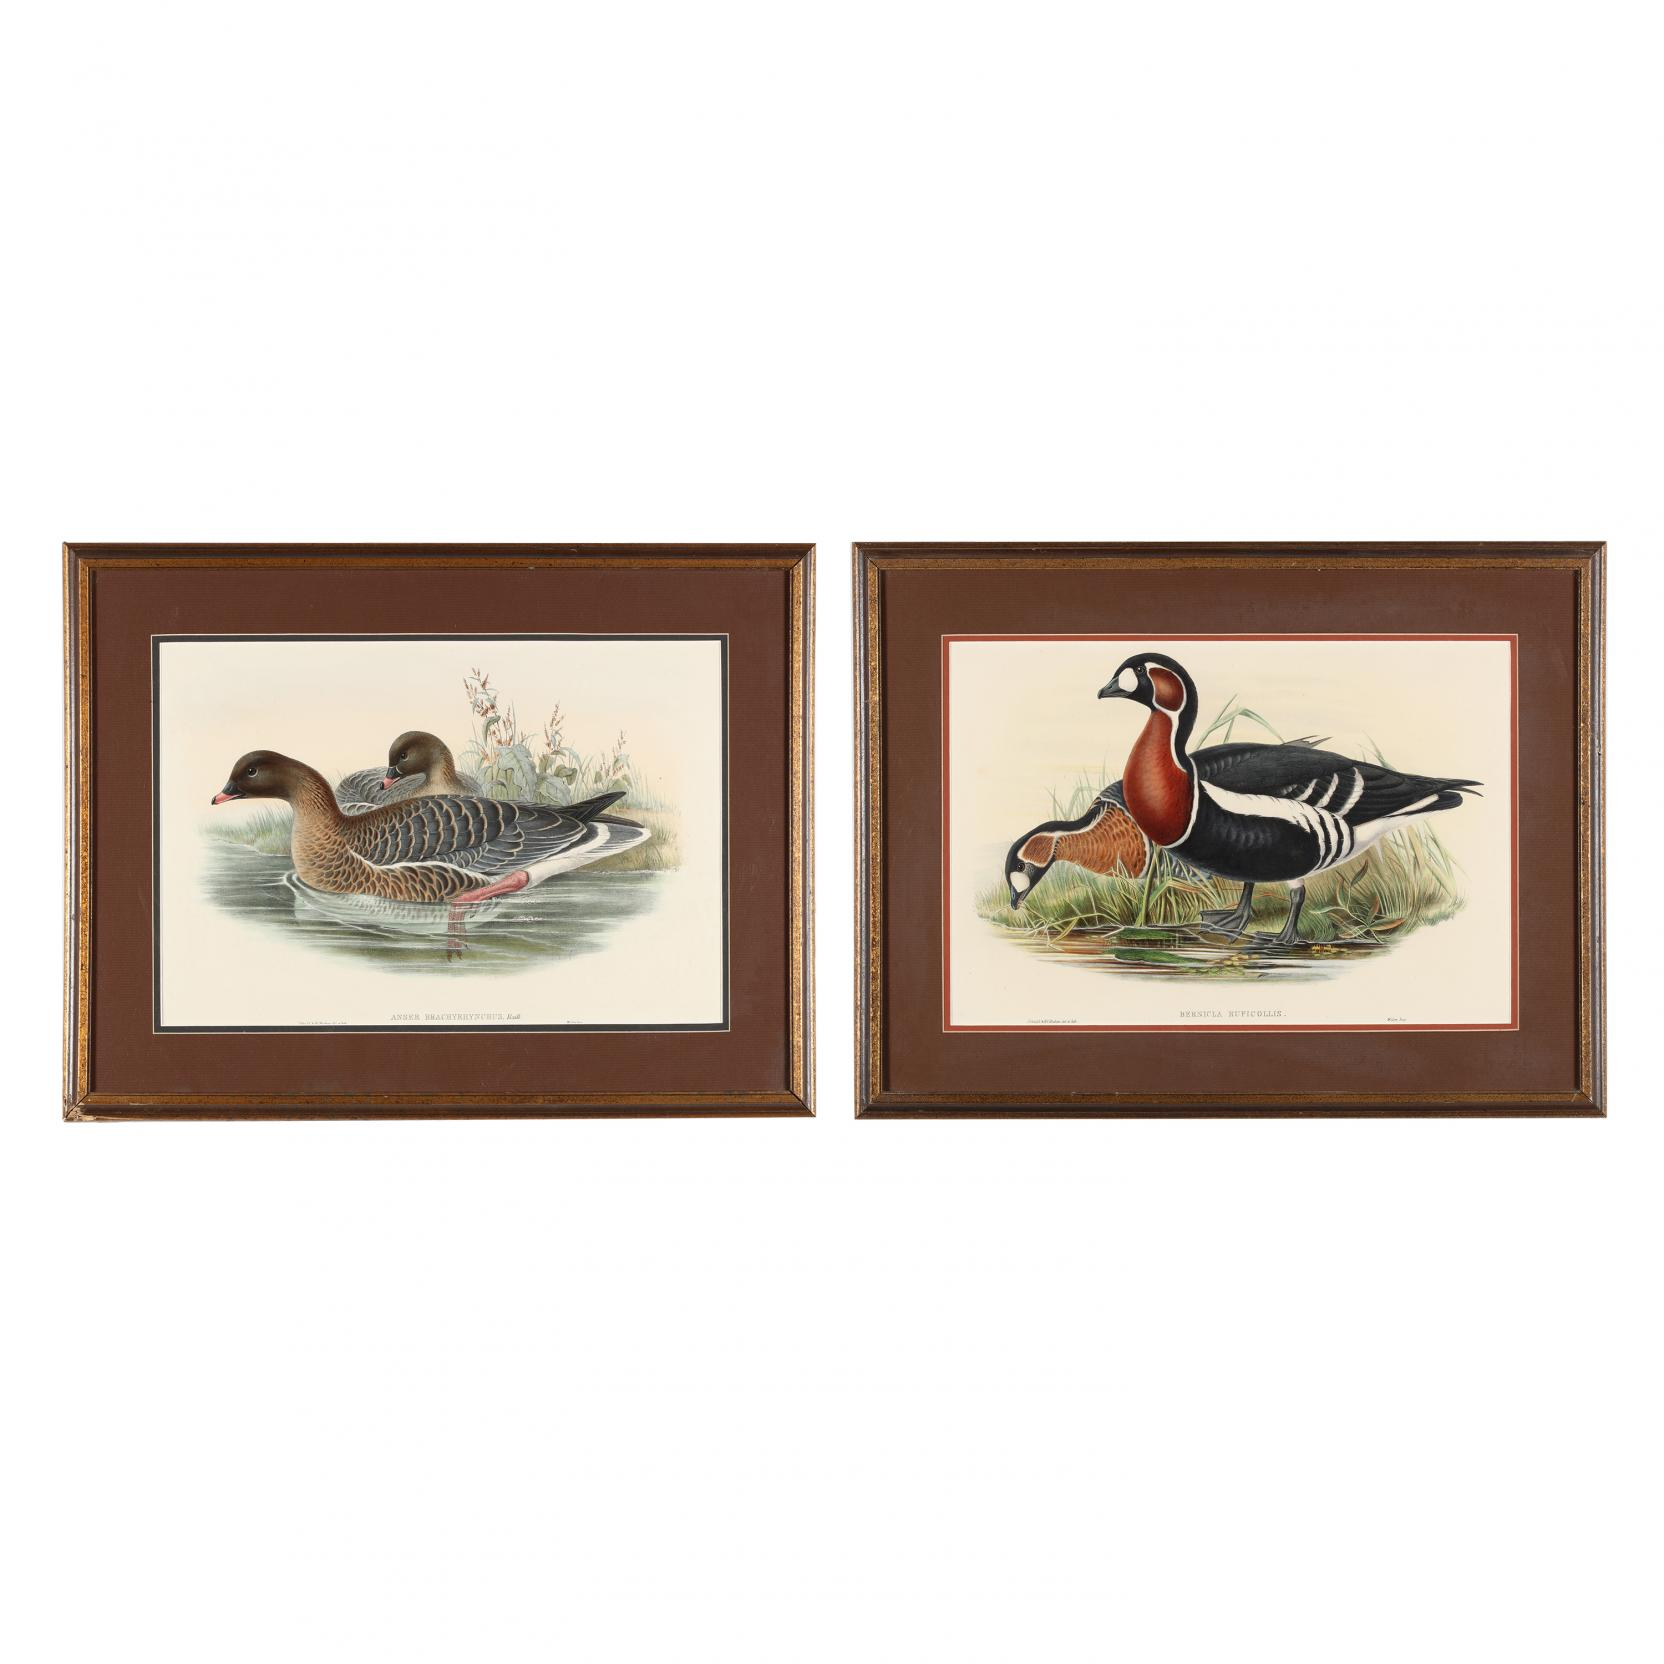 pair-of-goose-prints-from-john-gould-s-i-the-birds-of-great-britain-i